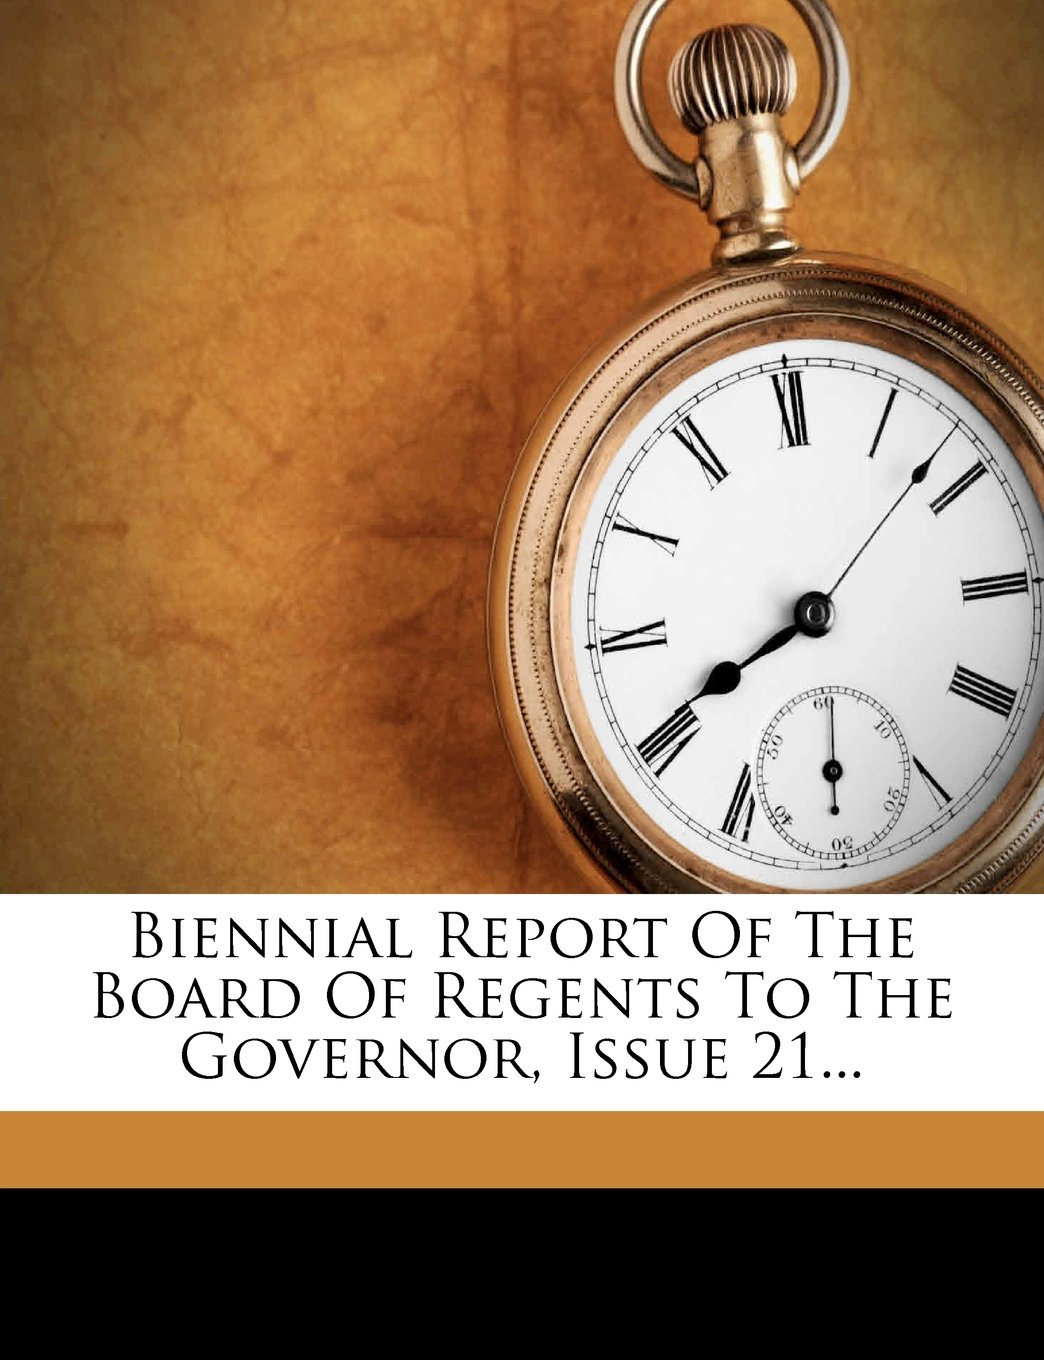 Biennial Report of the Board of Regents to the Governor, Issue 21... pdf